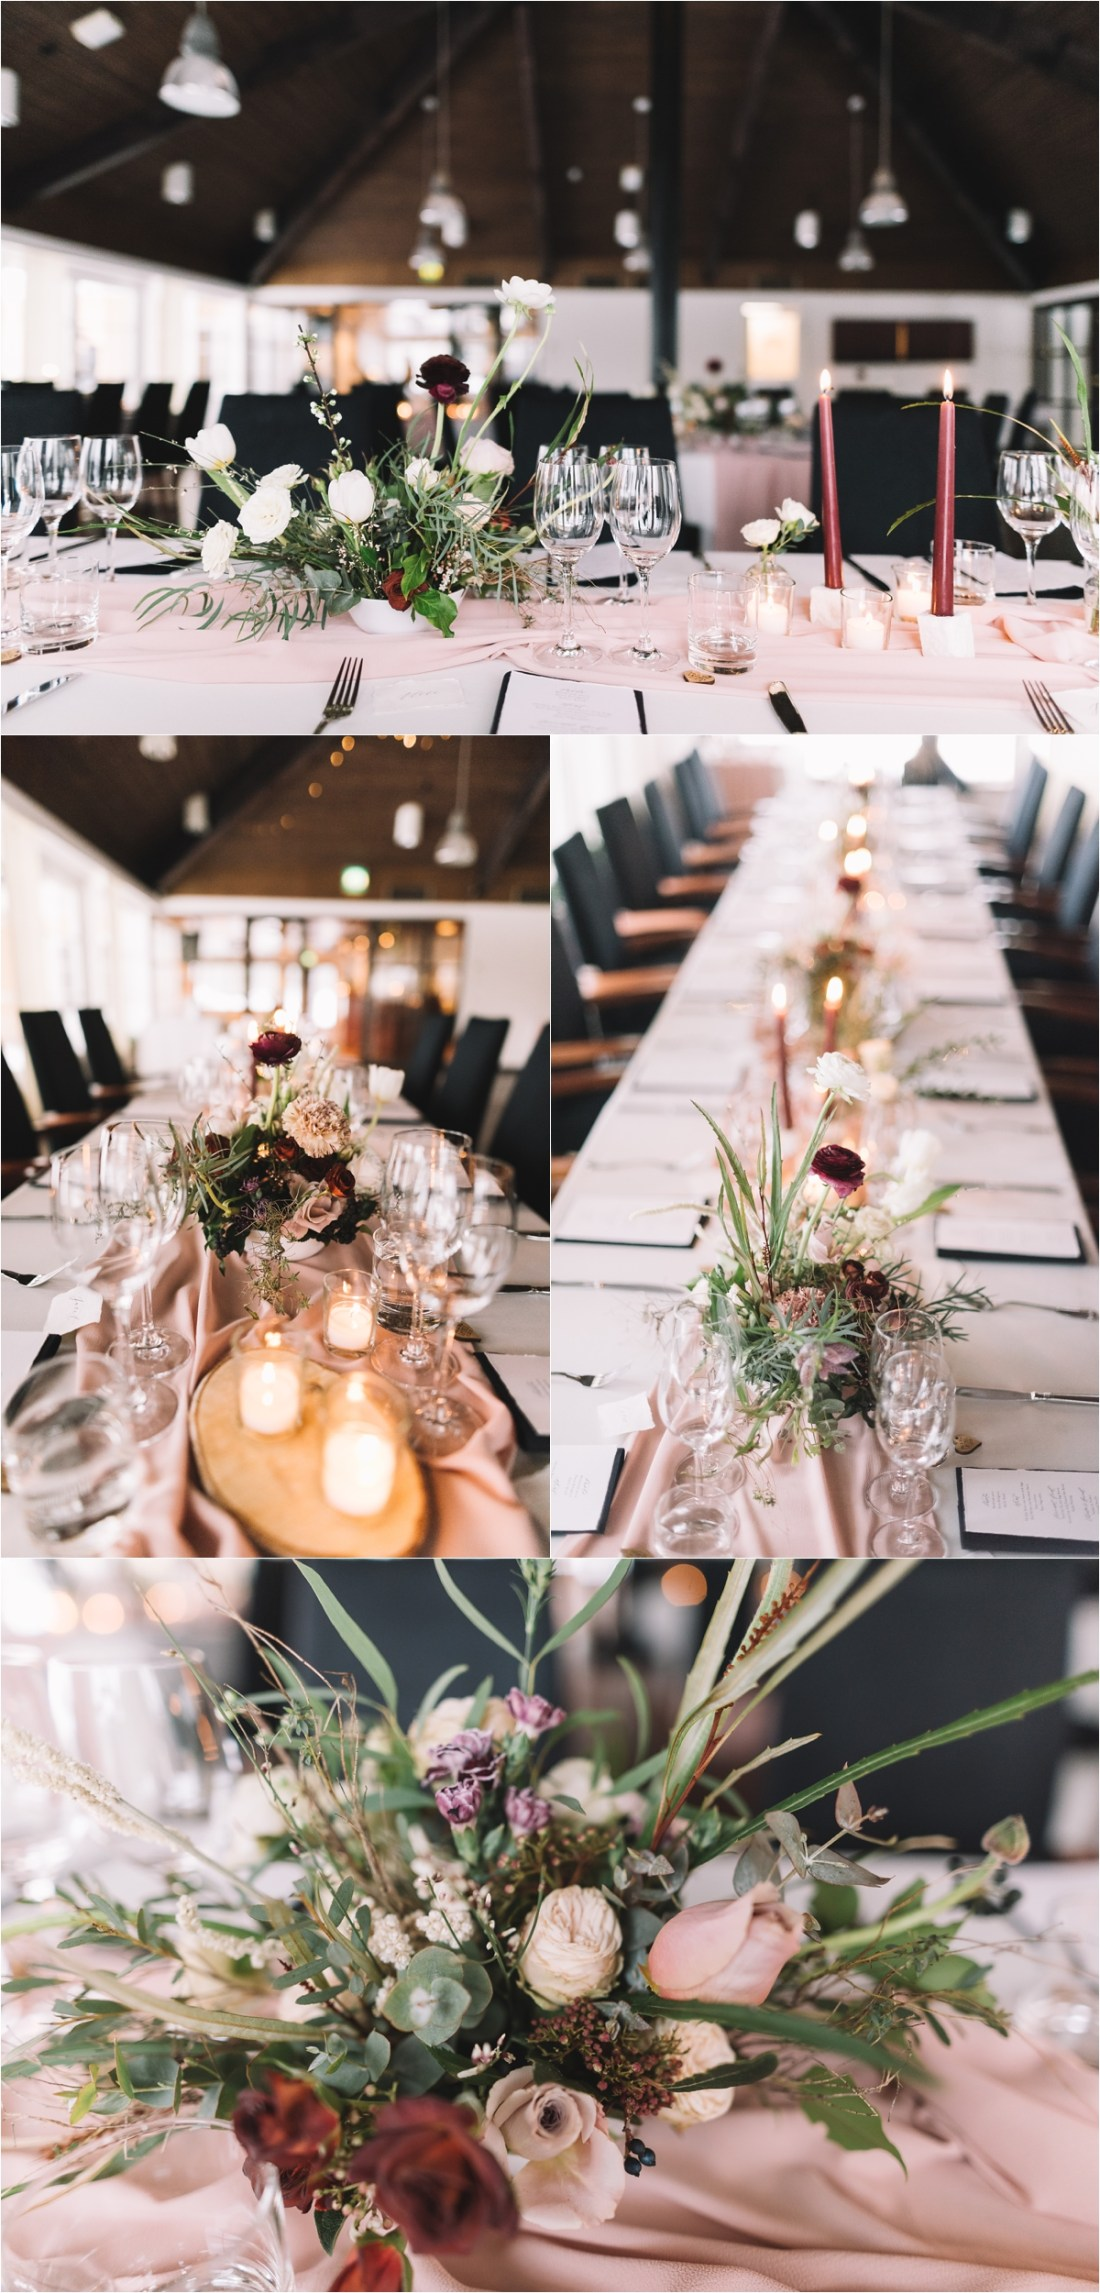 Winter wedding decor for a winter wonderland wedding in Finland by Lucie Watson Photography